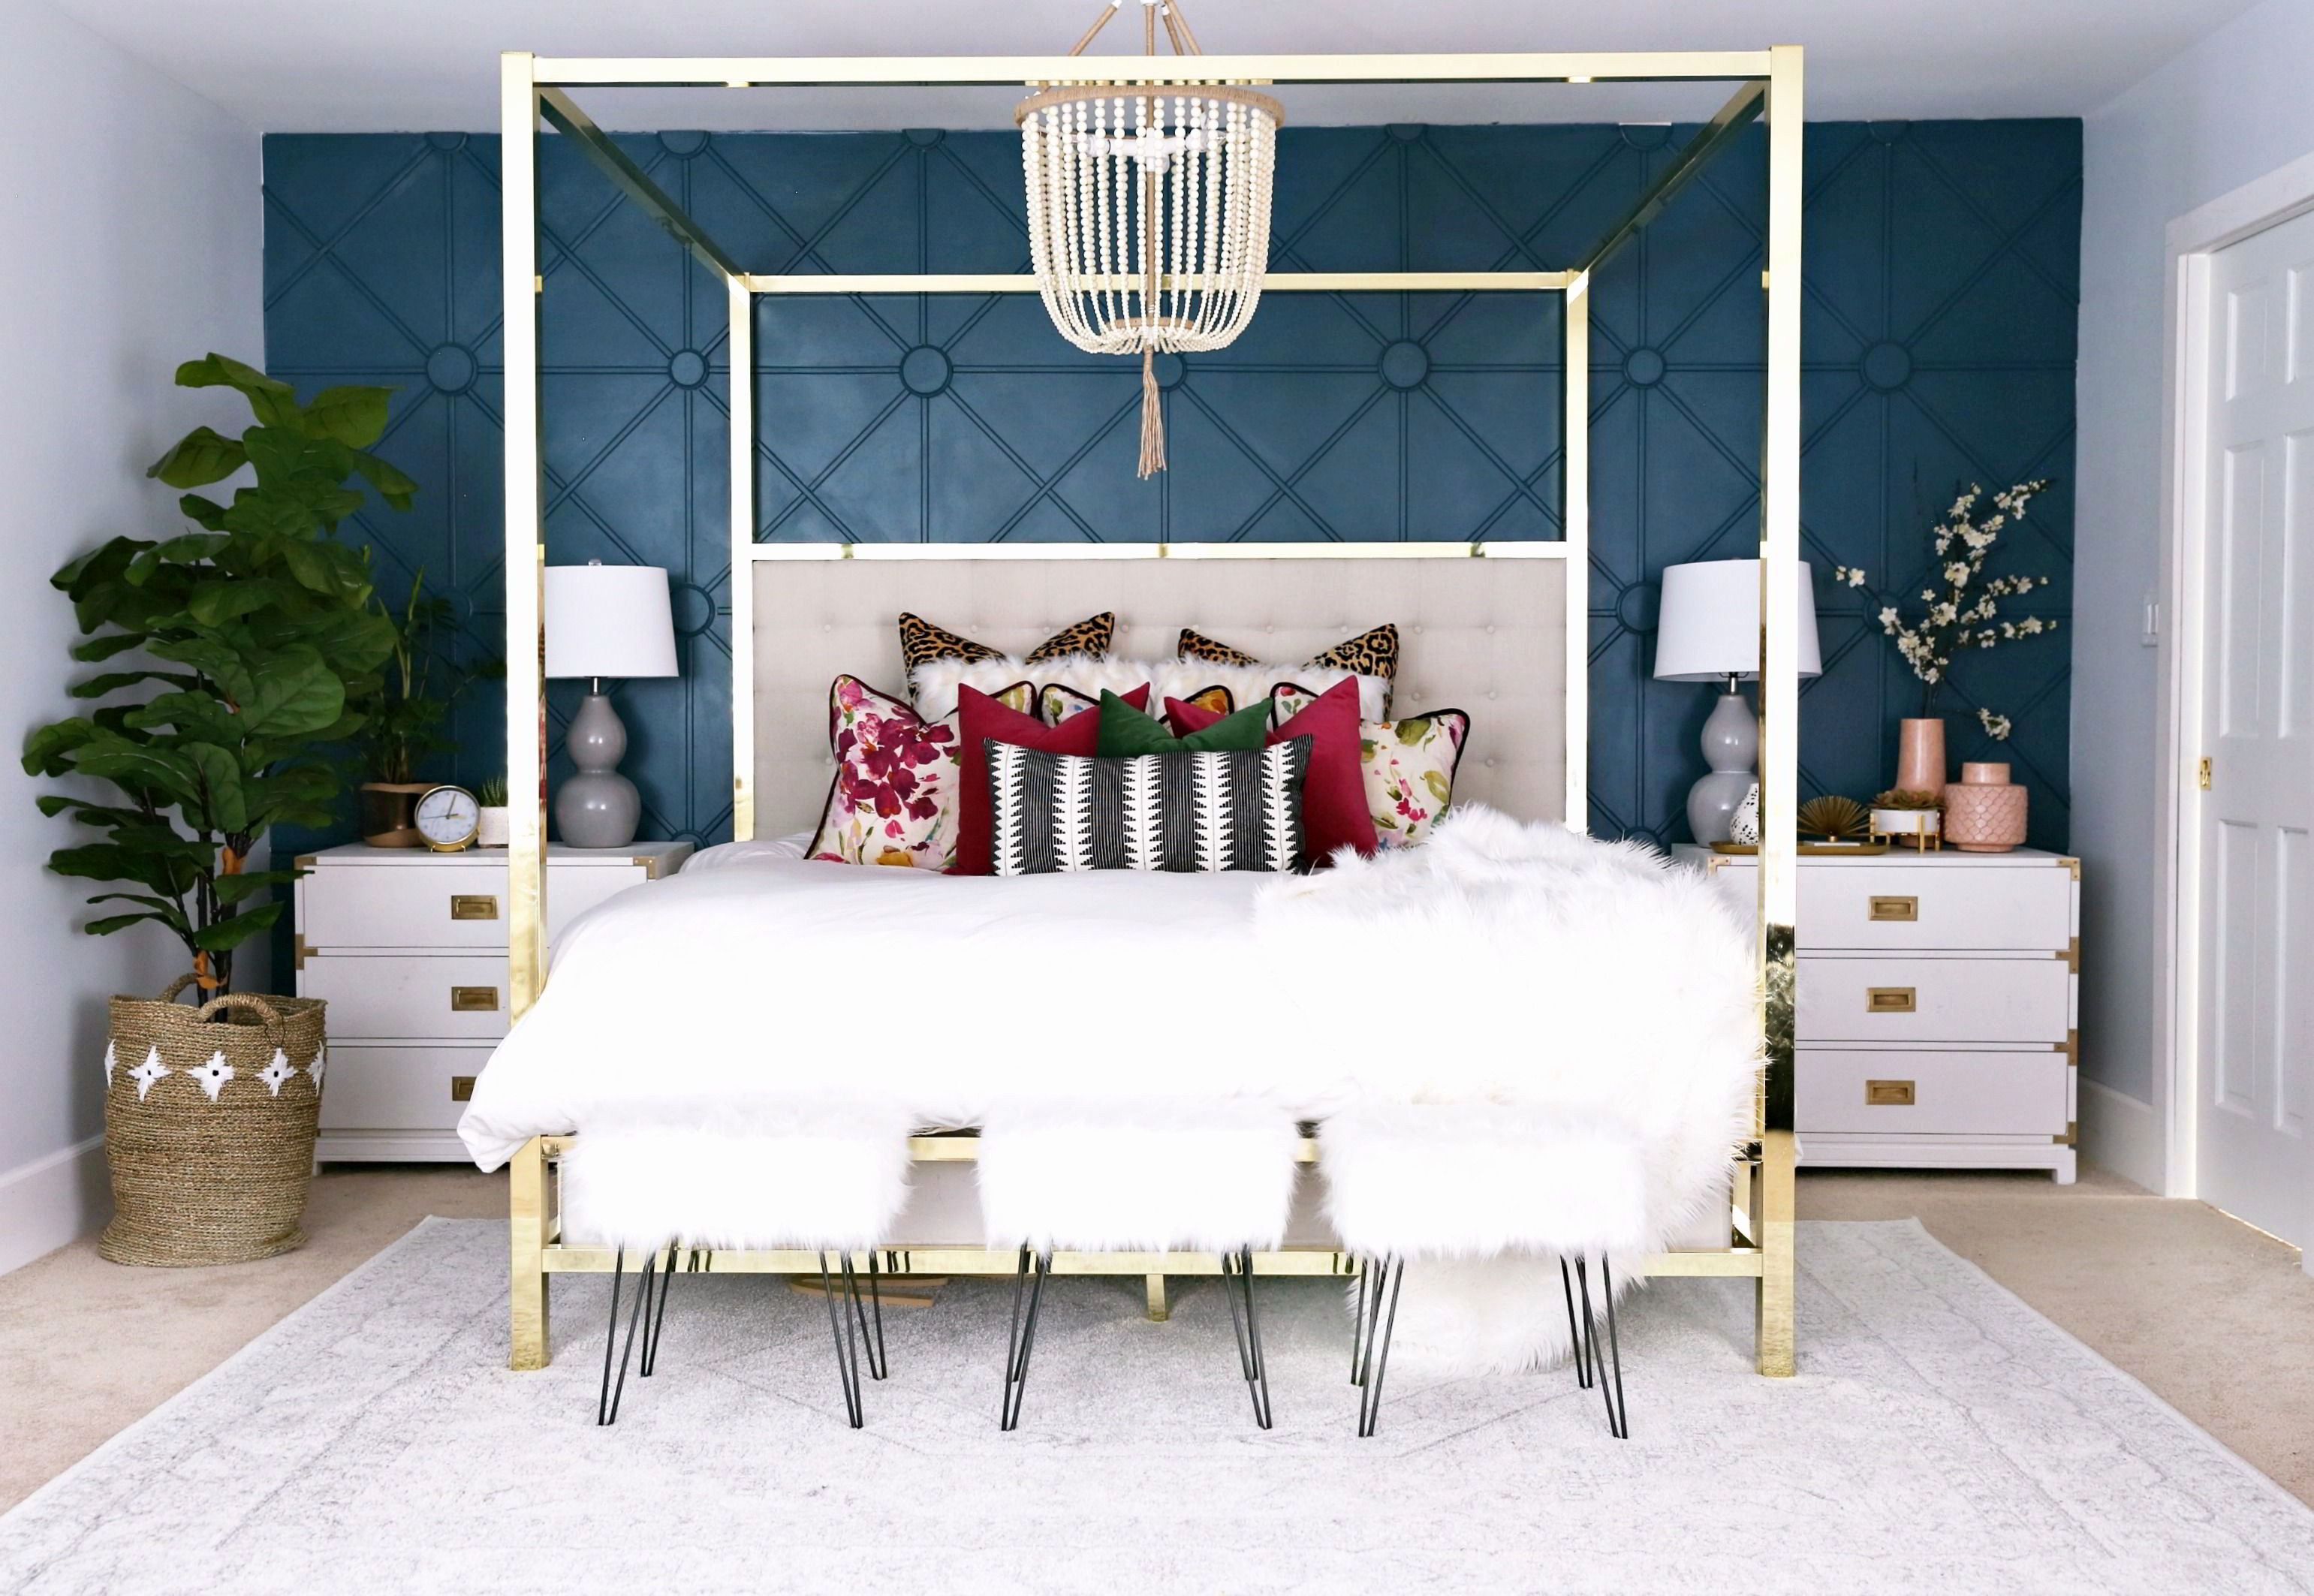 romantic bedroom ideas for her special master bedroom design bedroom ideas of romantic bedroom ideas for her